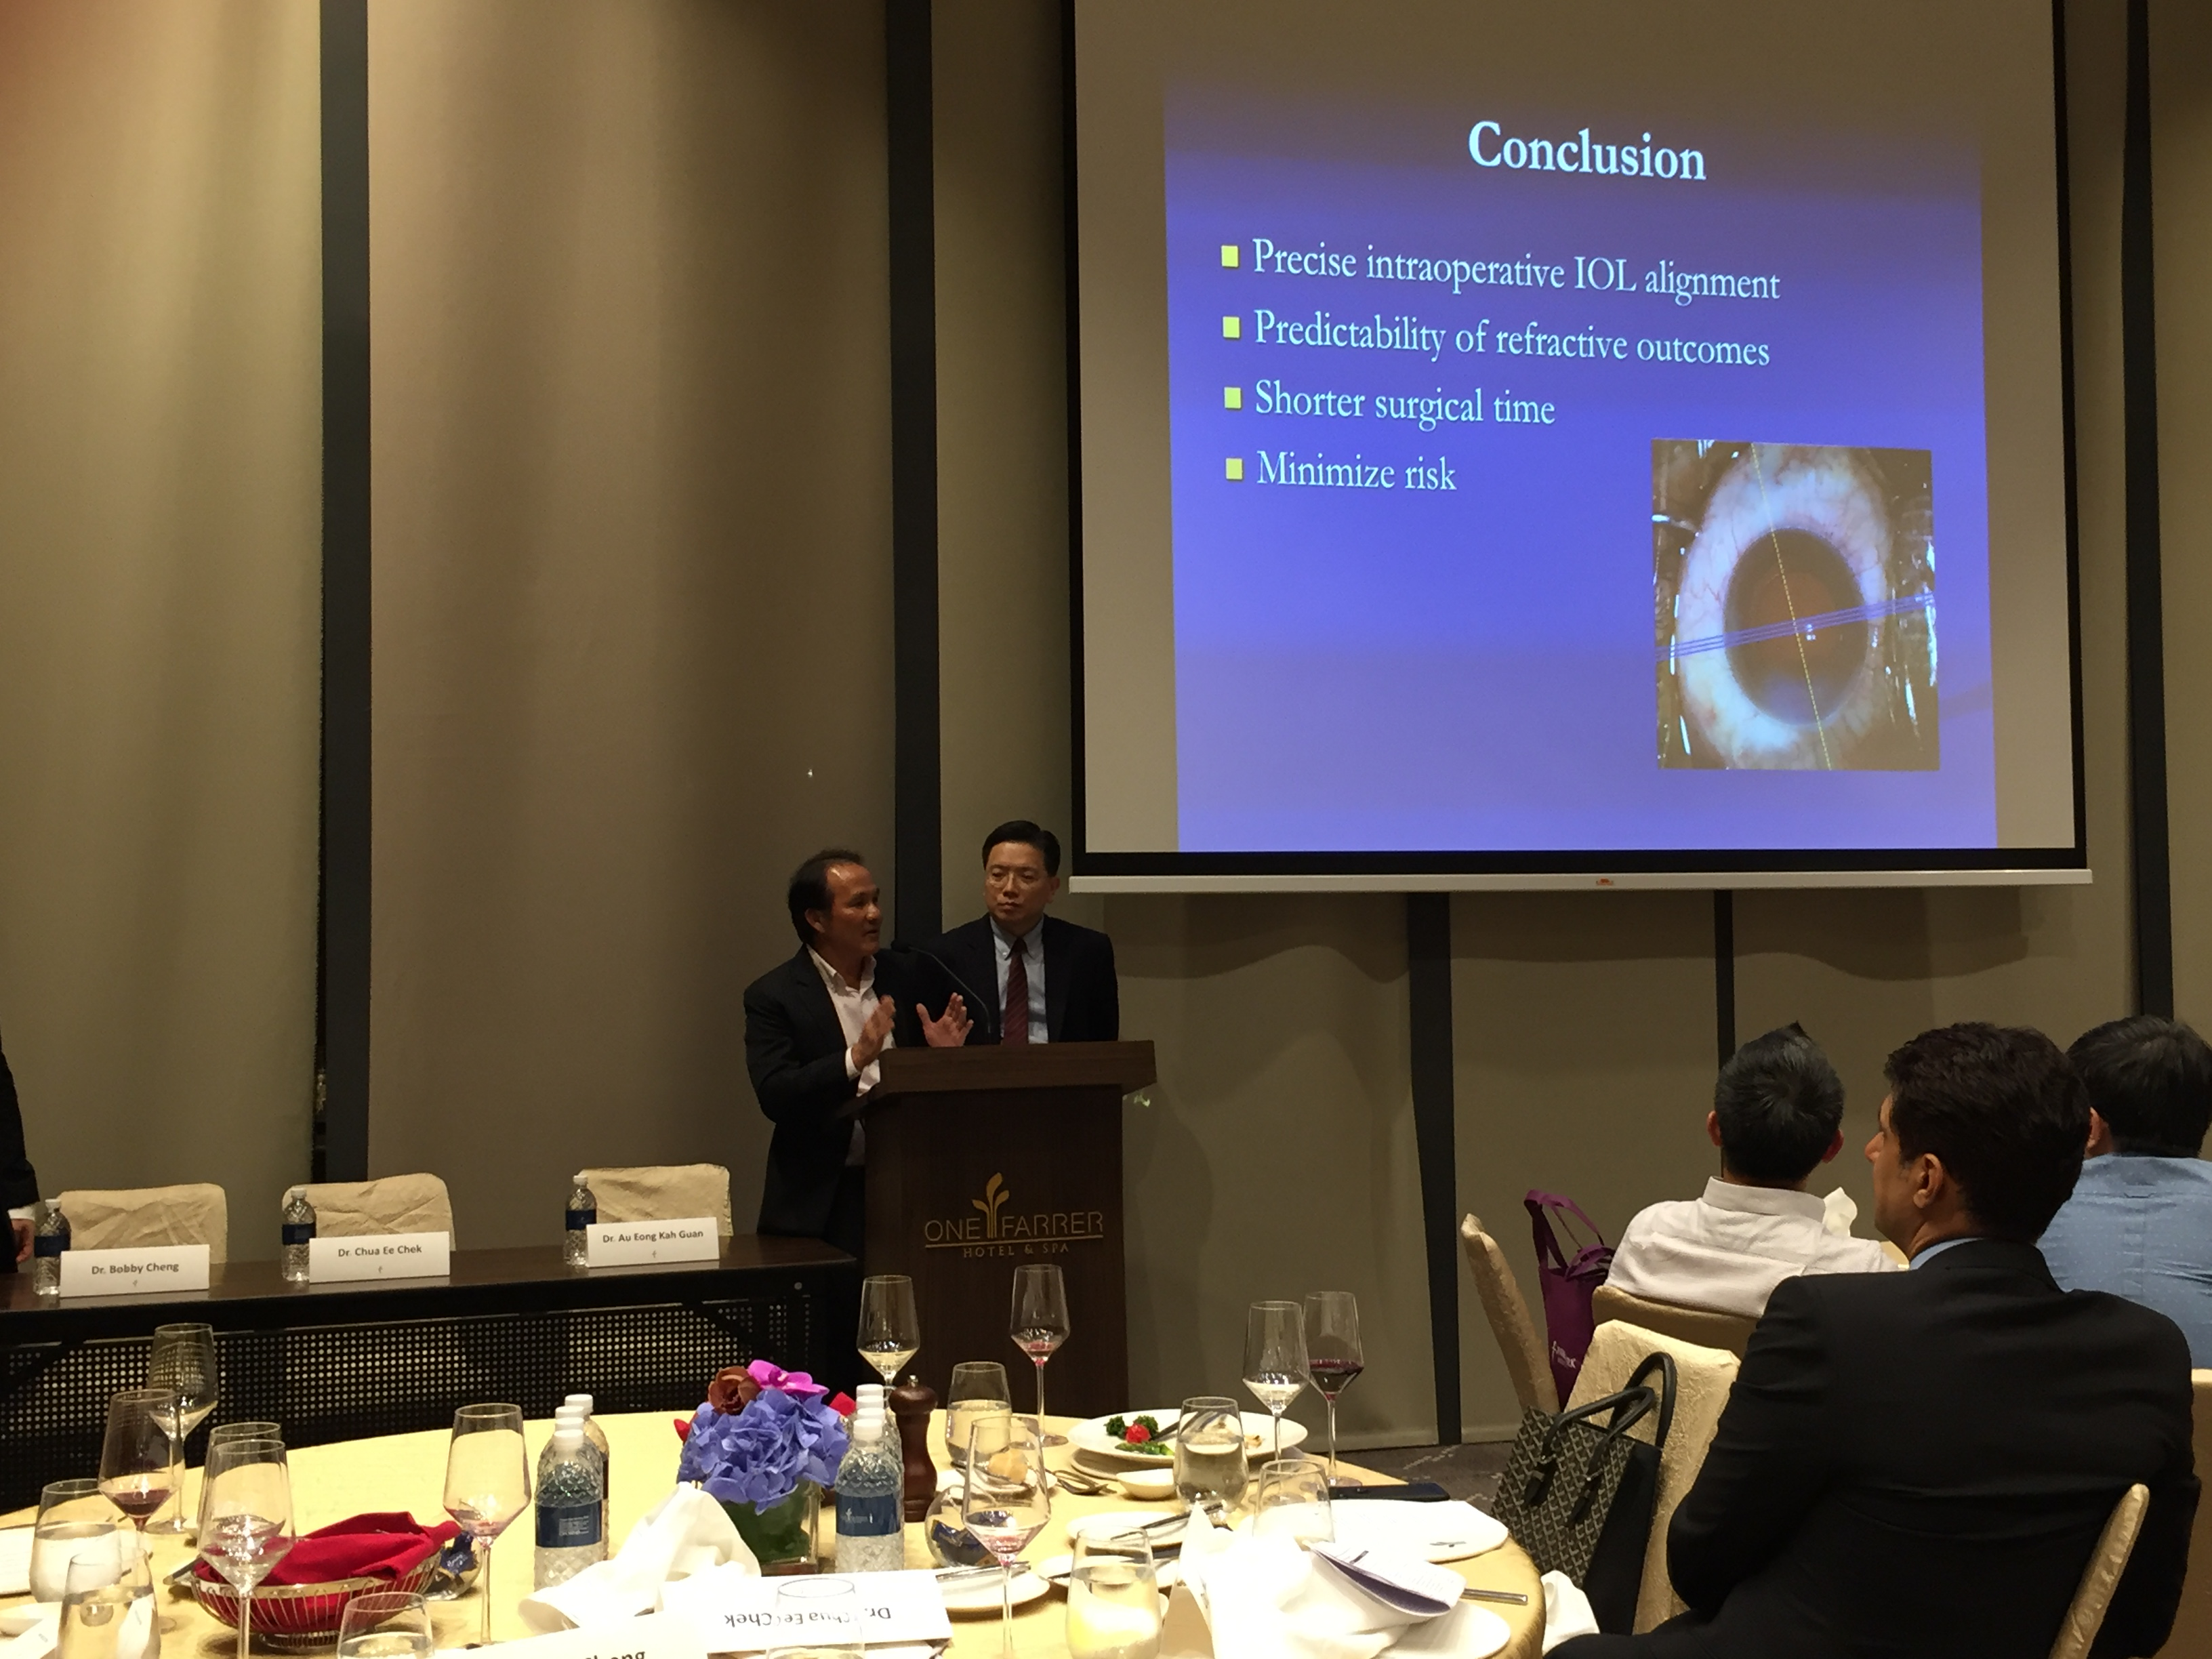 "Dr Chua Ee Chek (left) and Dr Au Eong Kah Guan engaging in a lively question and answer session with participants at the symposium on ""Advances in Computer-assisted Cataract Surgery"" at One Farrer Hotel & Spa on 2 August 2017."